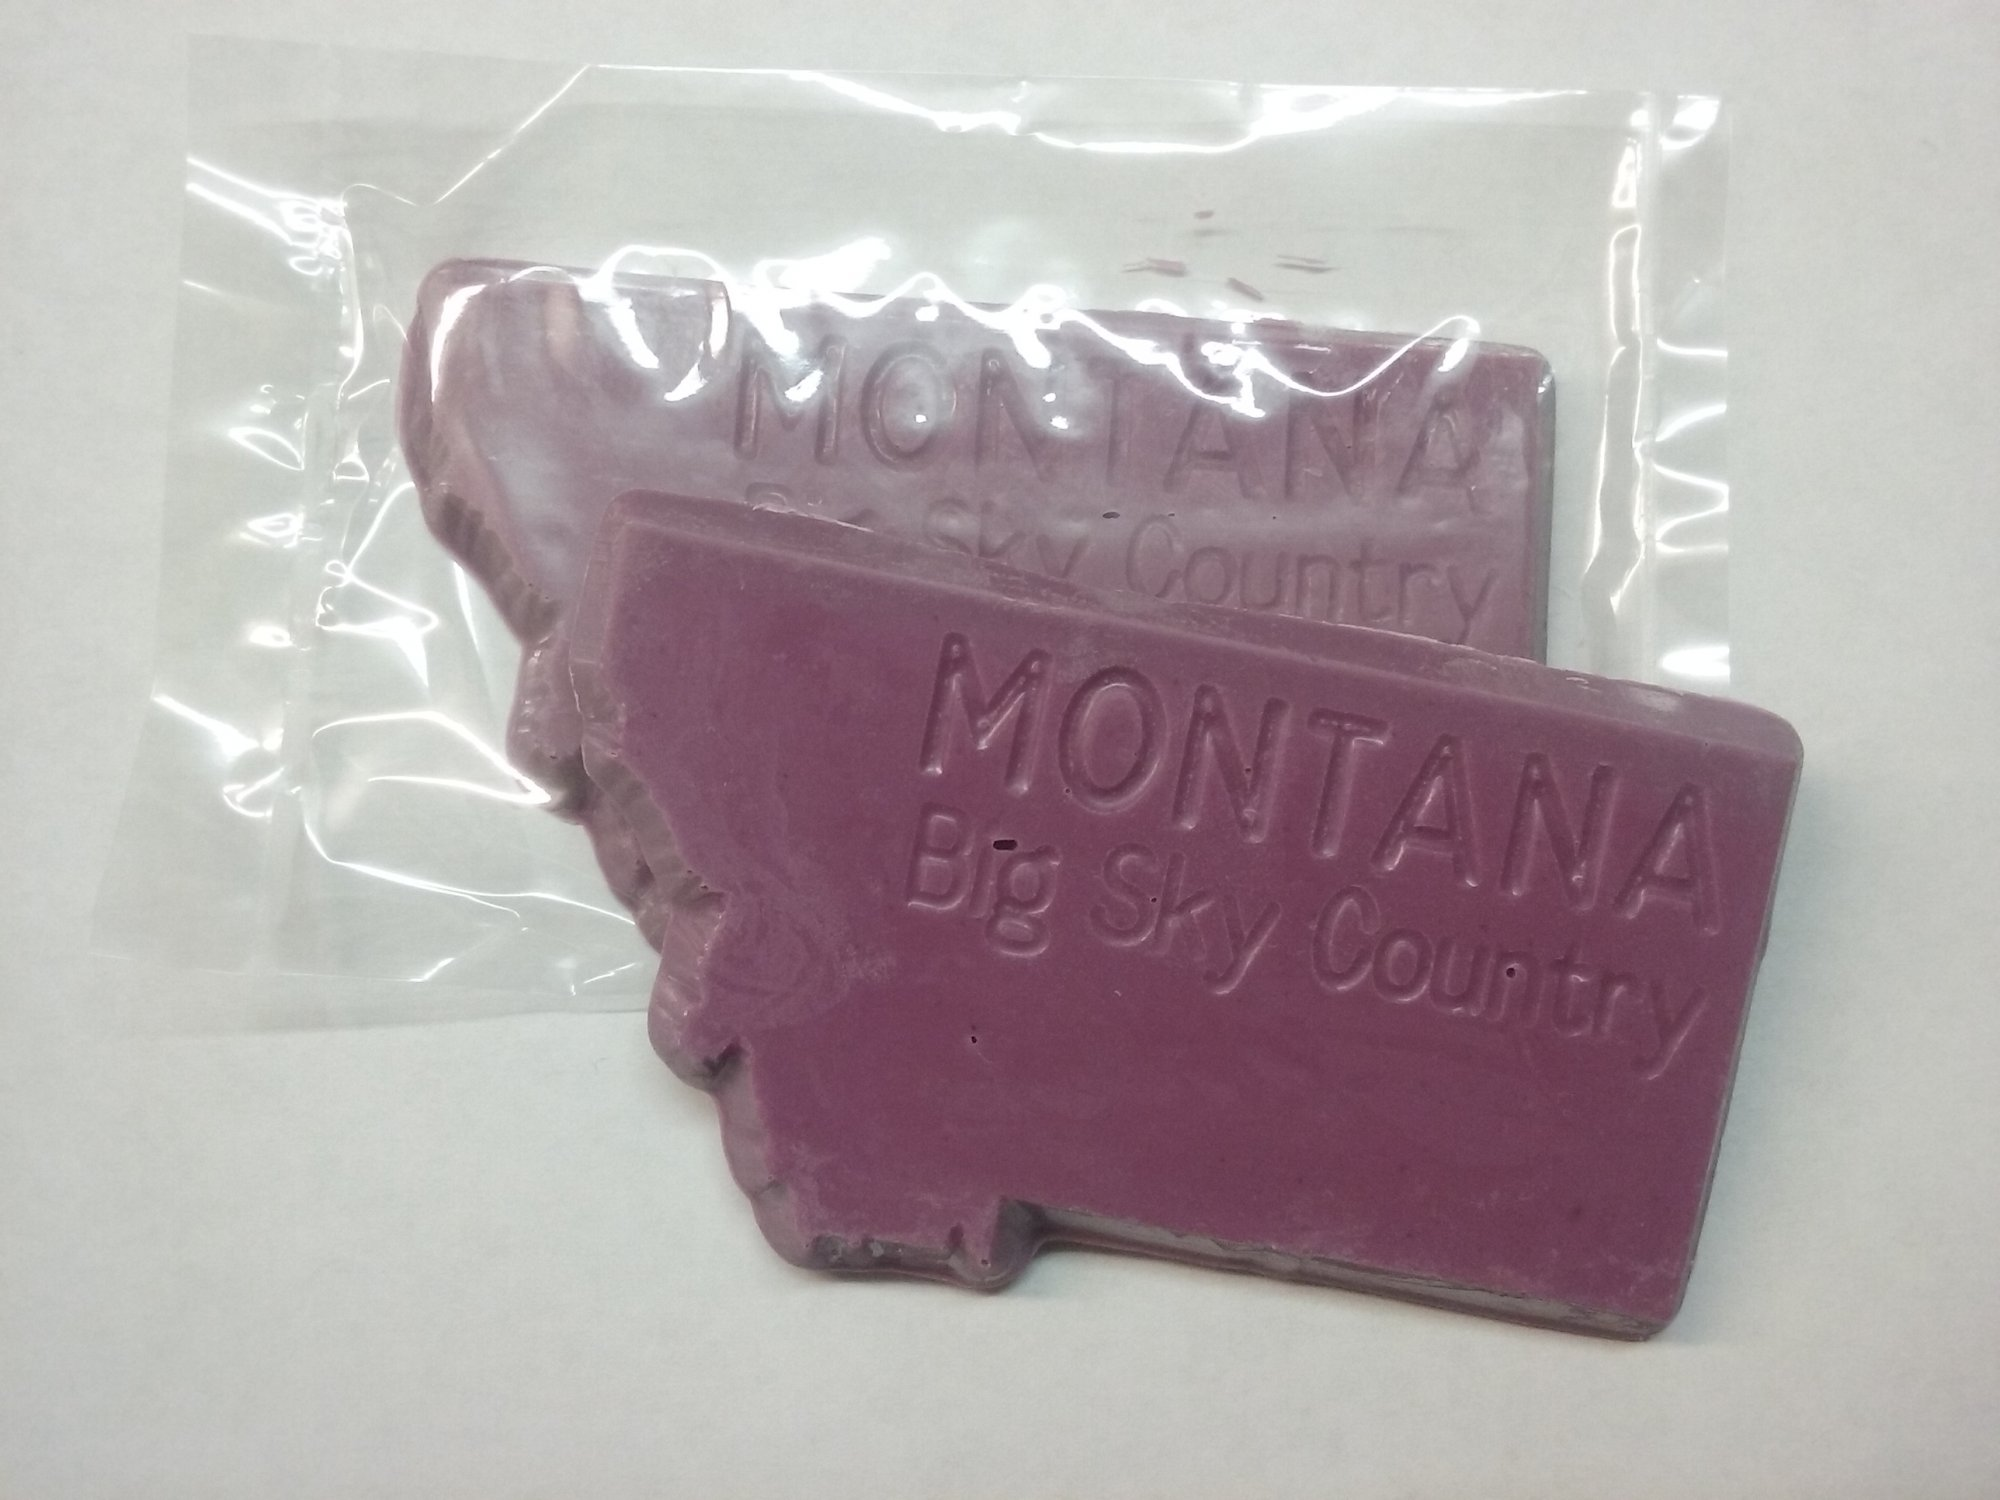 Montana State Bar (Huckleberry)